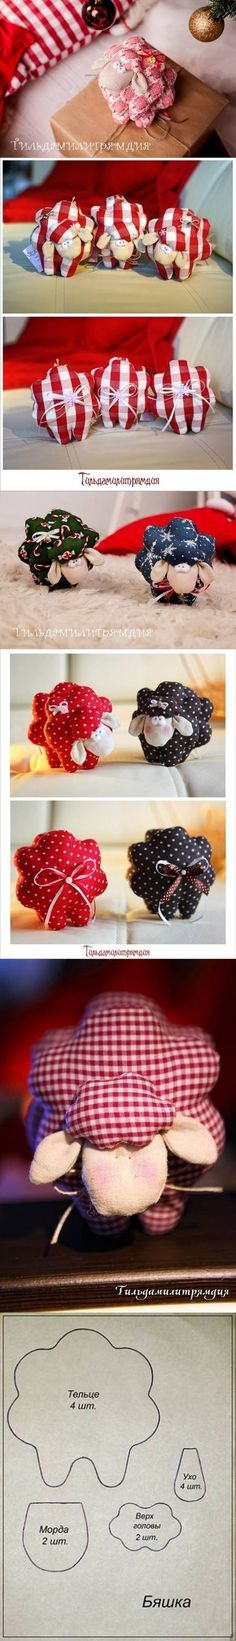 DIY Cute Fabric Lamb DIY Cute Fabric Lamb